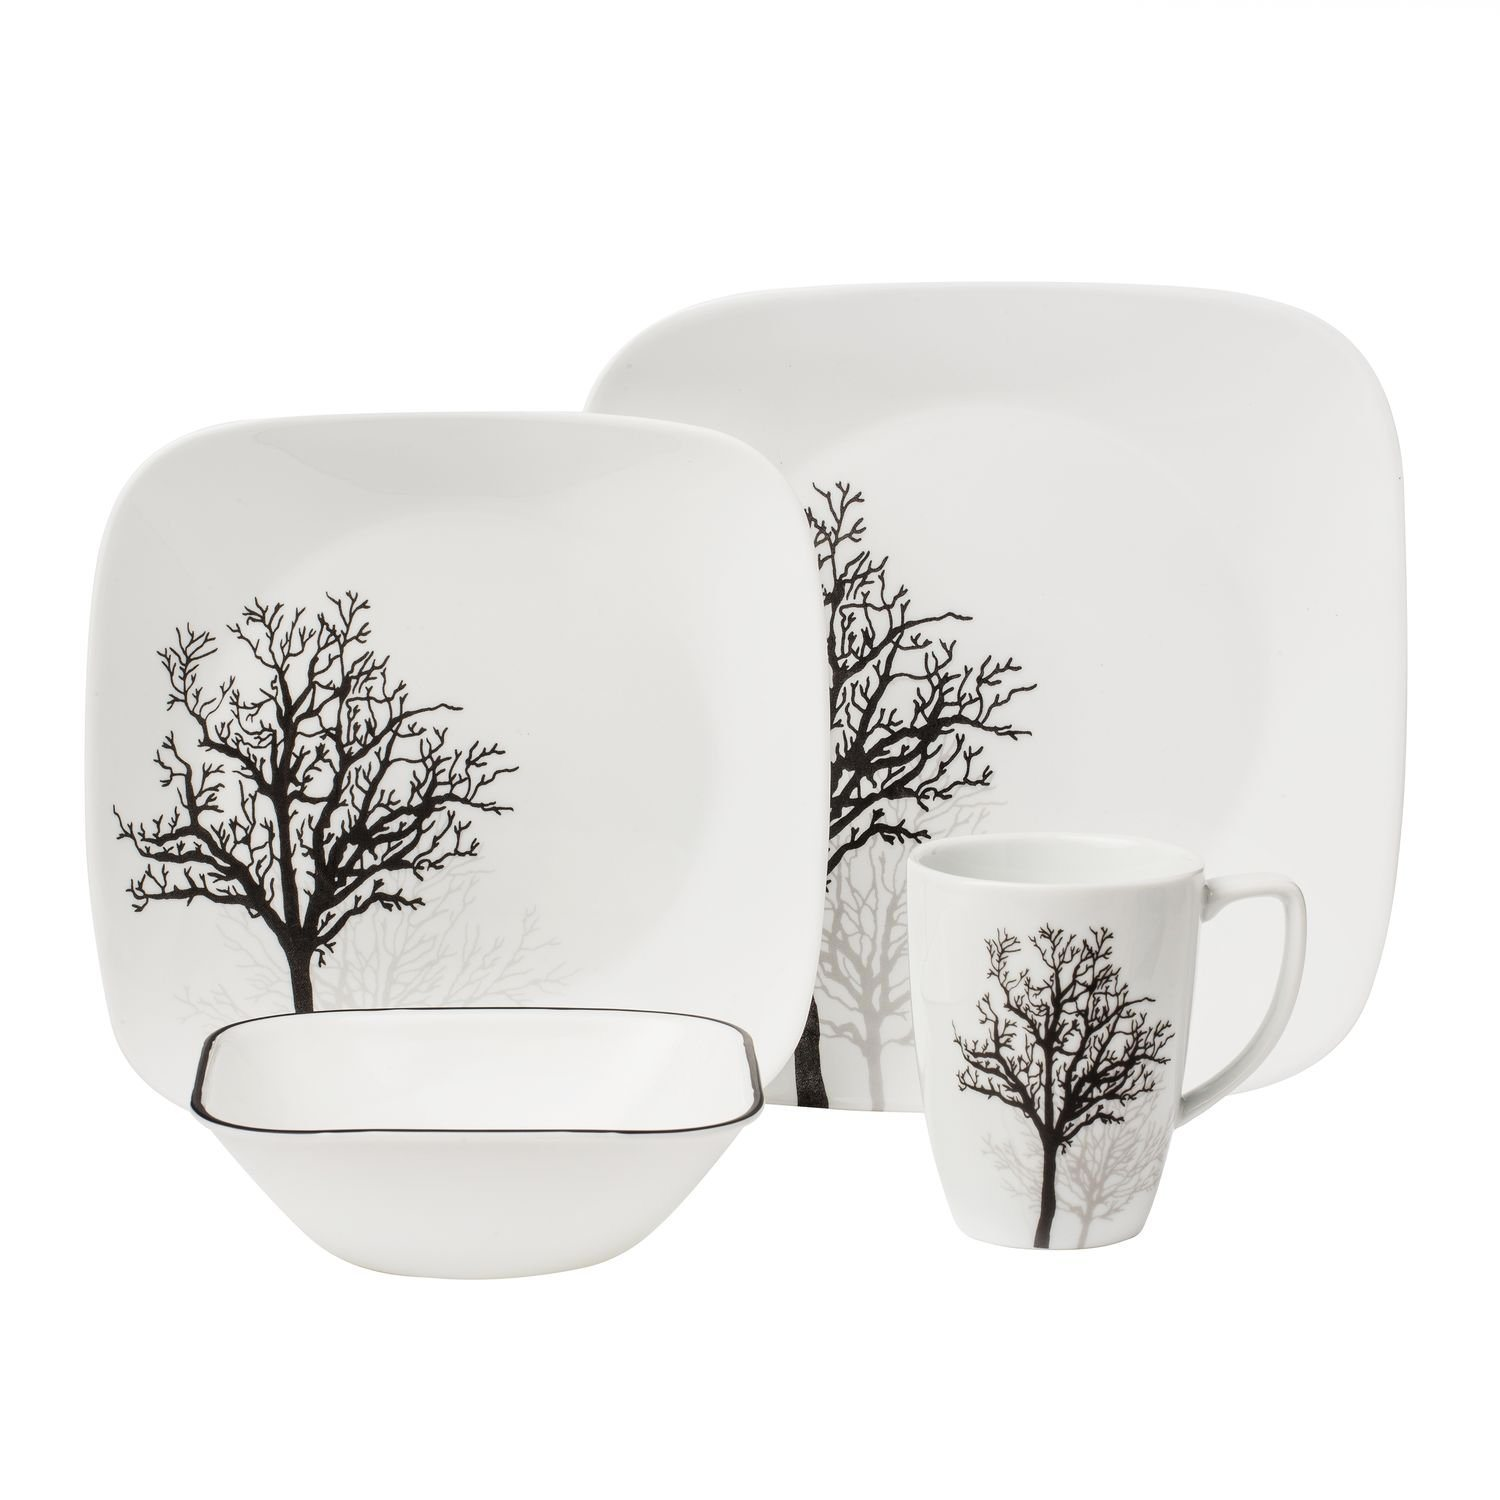 FDA Standard Ceramic Dinnerware Set Bowl Plate Tree Painted